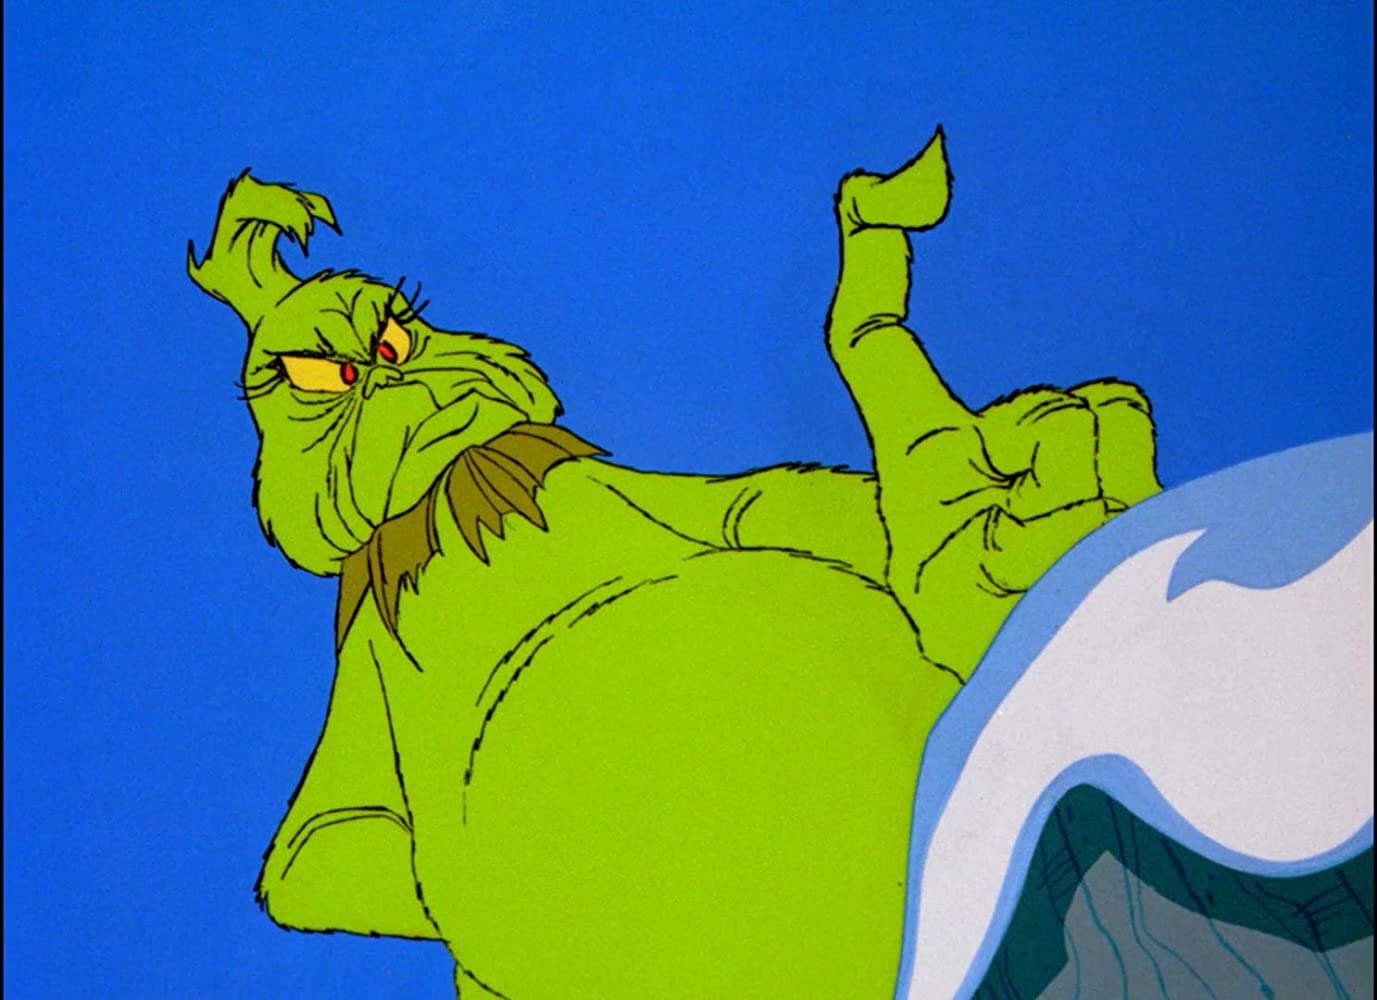 How The Grinch Stole Christmas 1966 Characters.How The Grinch Stole Christmas 1966